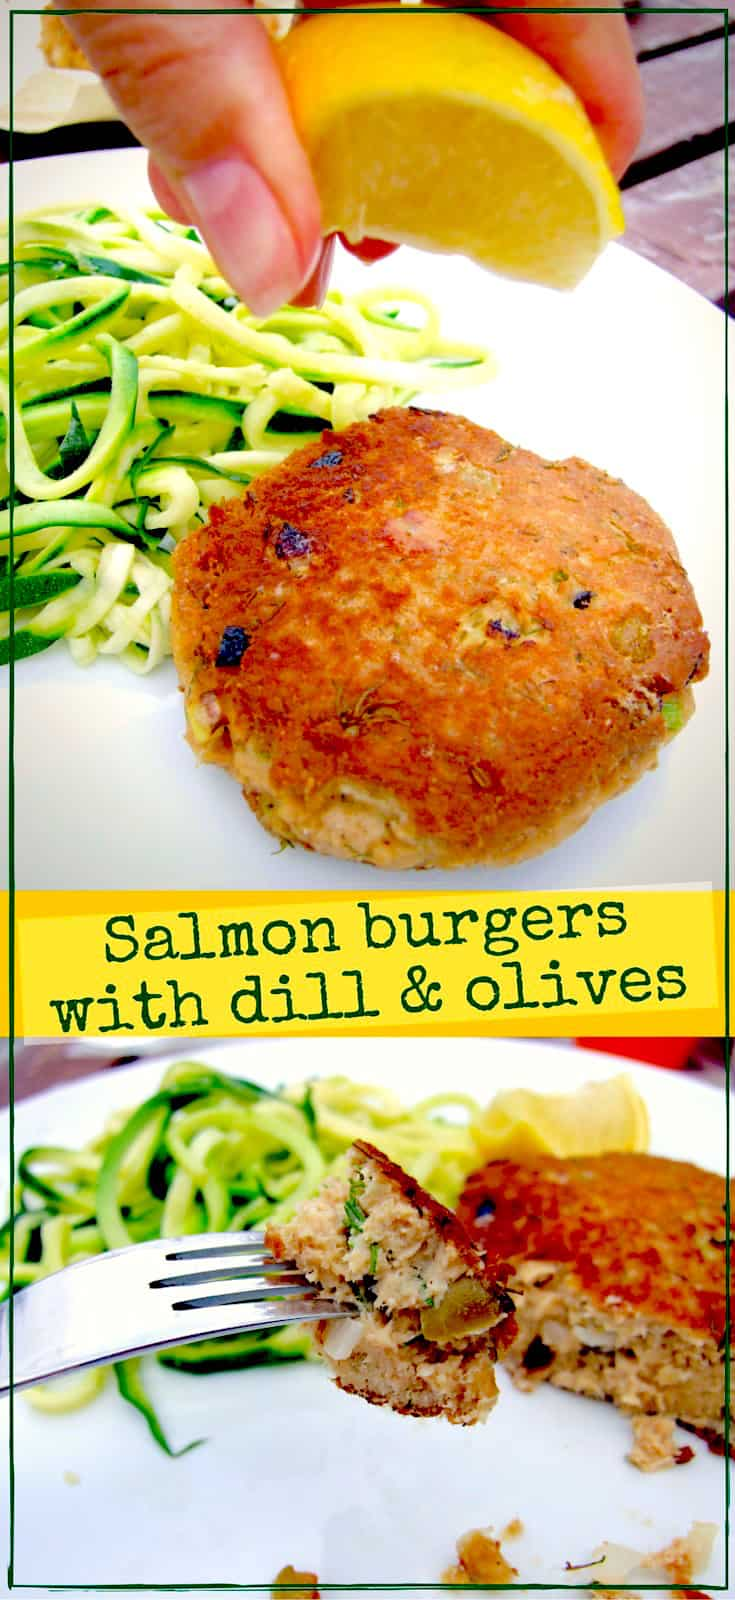 Easy to make salmon fishcakes (burgers) flavoured with fresh dill, spring onions & olives. A delicious & economical family supper that's packed with protein.